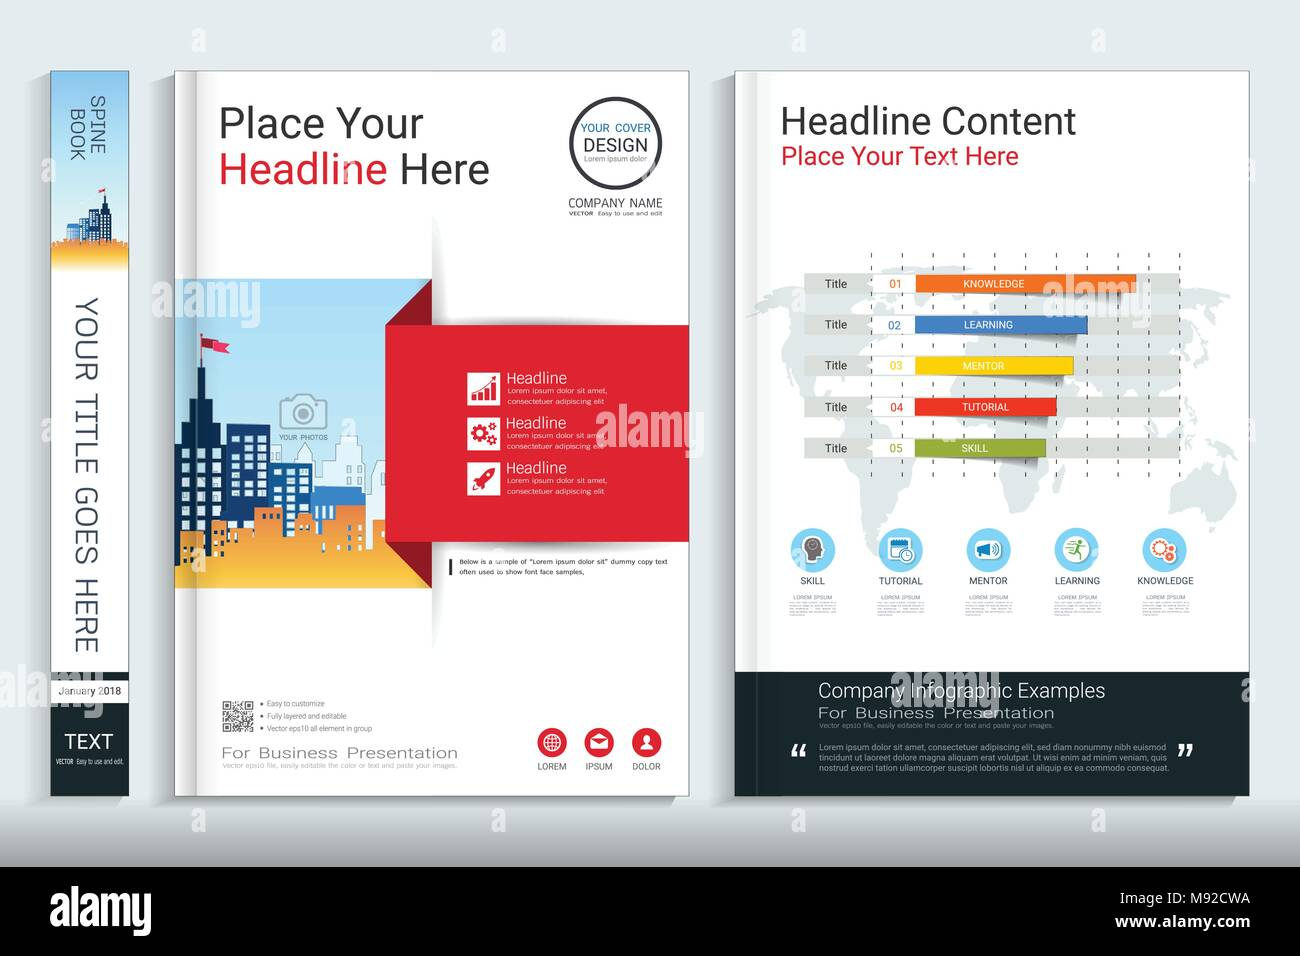 corporate cover book design template with infographic element covers designed for any business topic customizing easy to use templates